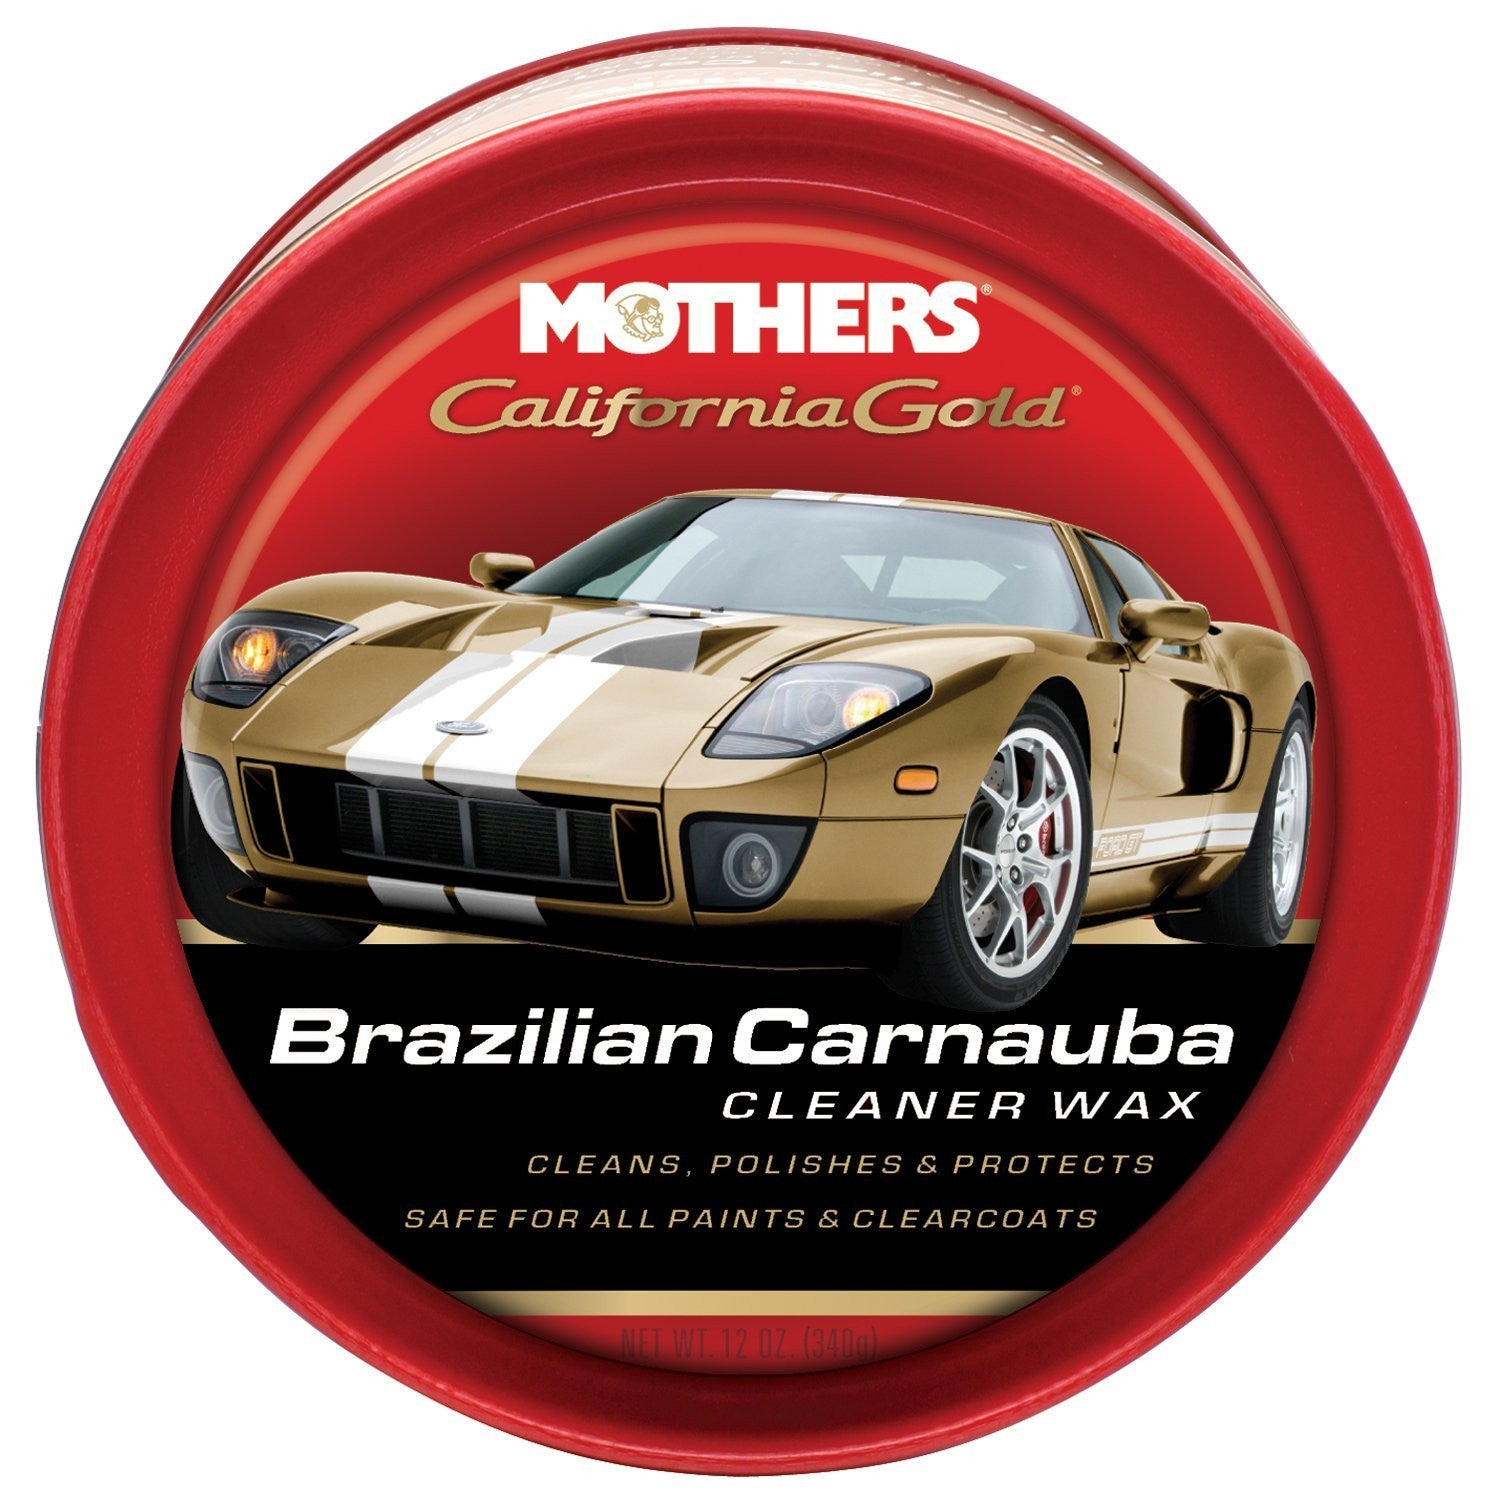 Mothers Brazilian Carnauba Cleaner Paste Wax (12oz.)